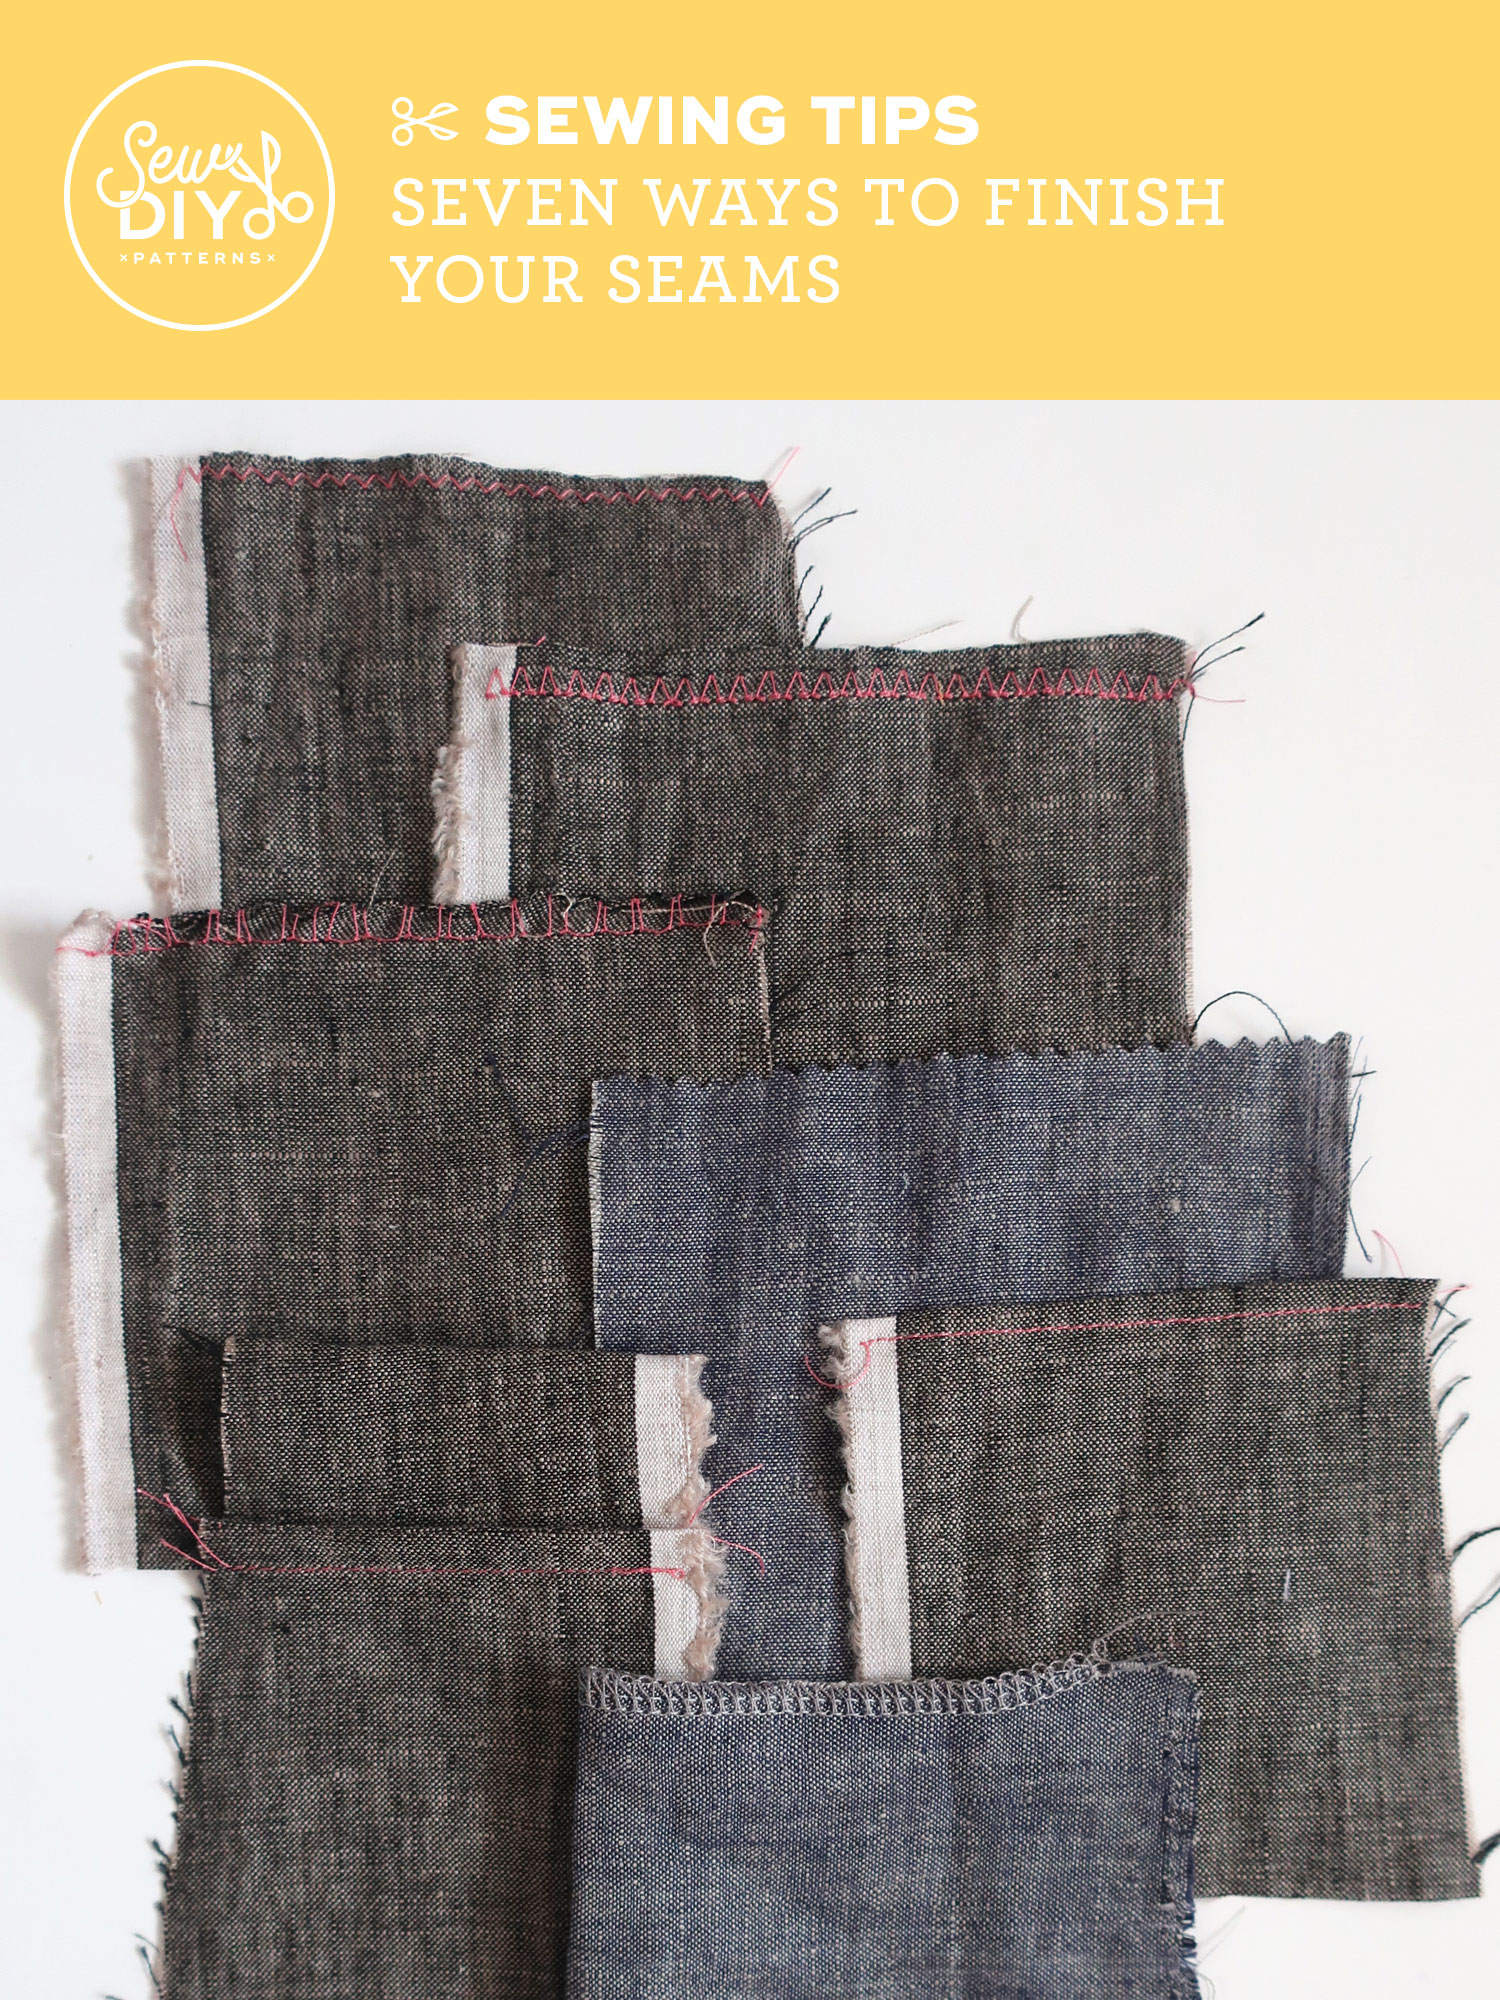 VIDEO - Seven Ways to Finish Your Seams from Sew DIY